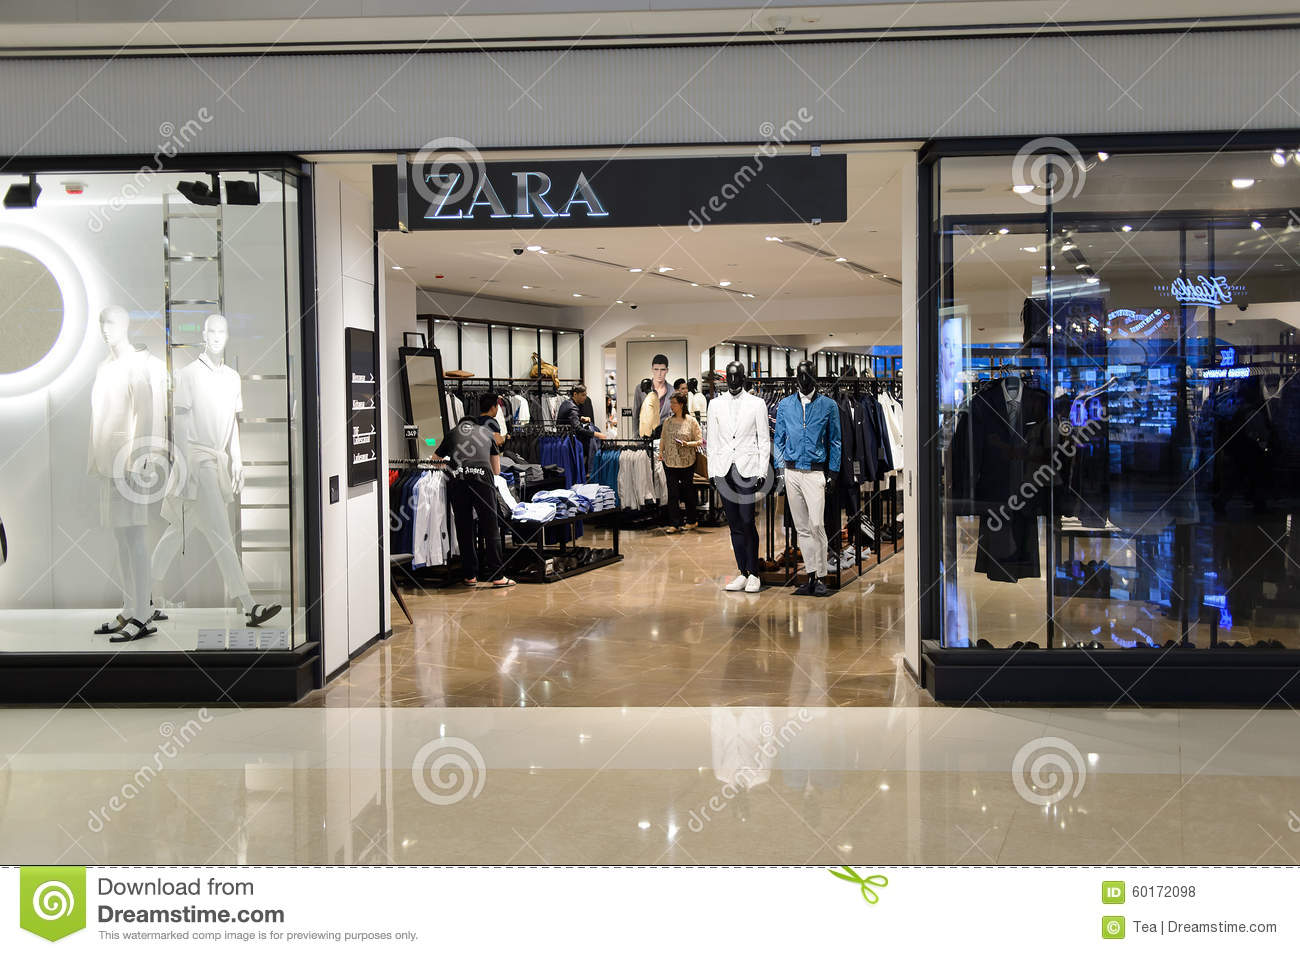 Zara clothing store in bangalore